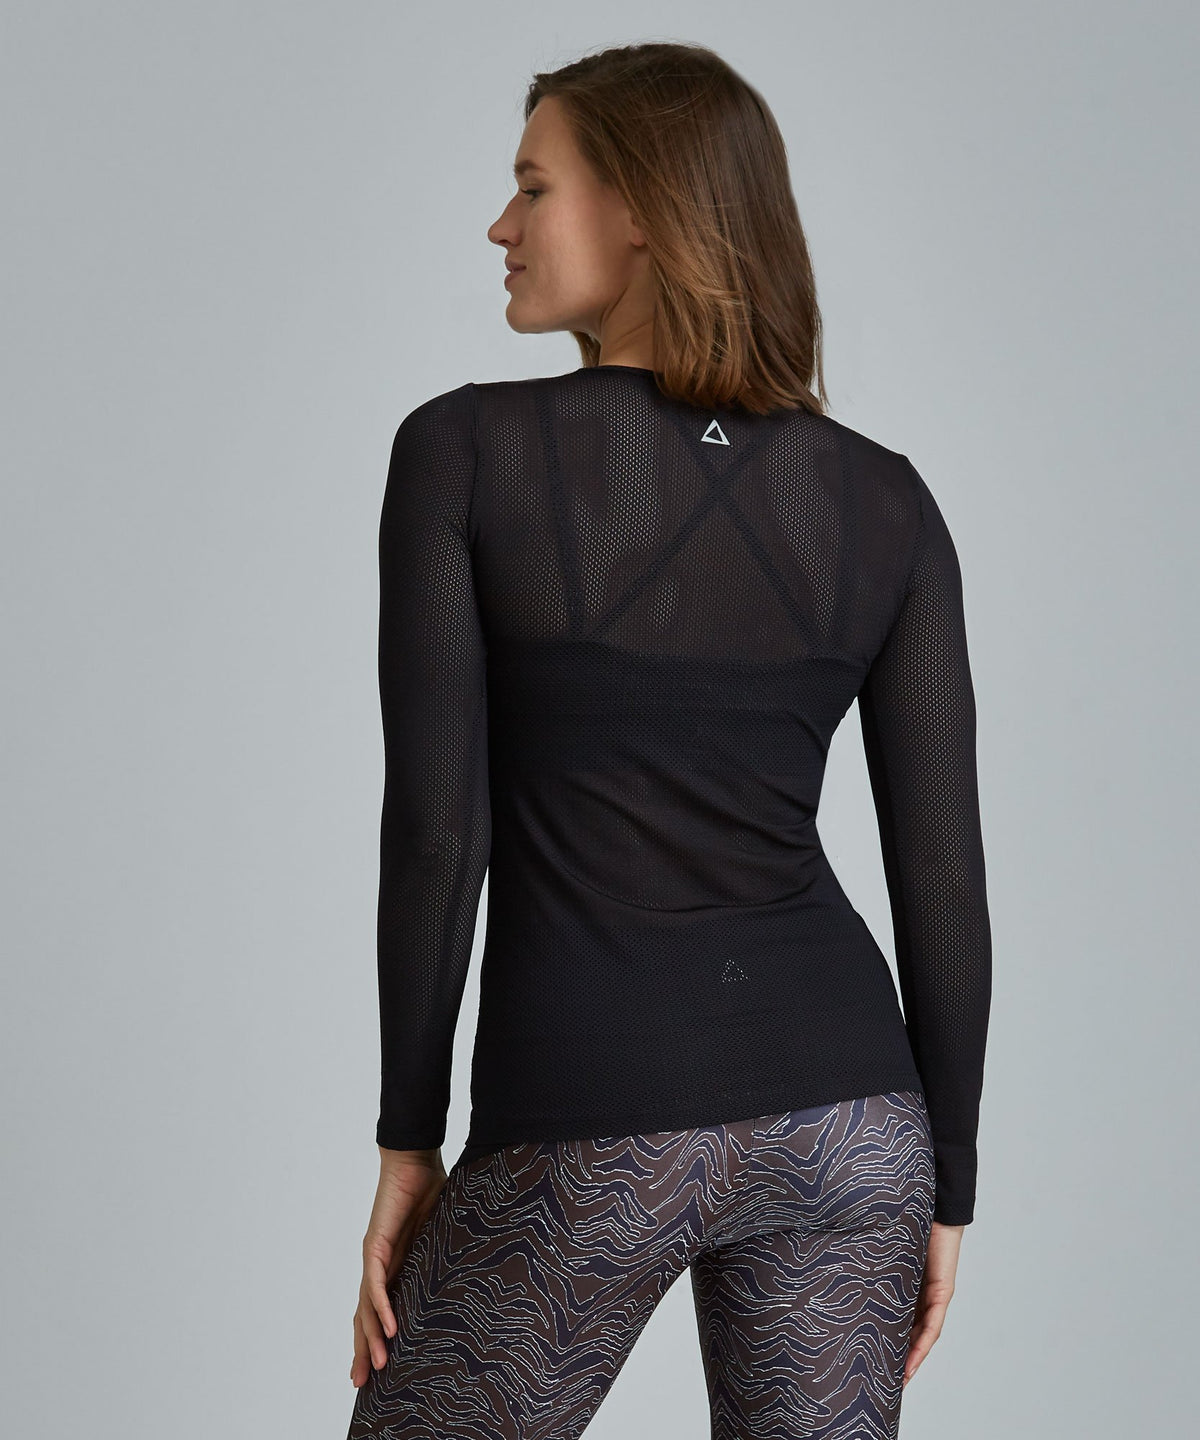 Laser Mesh Top - Black Black Laser Mesh Top - Women's Activewear Long Sleeve Top by PRISMSPORT